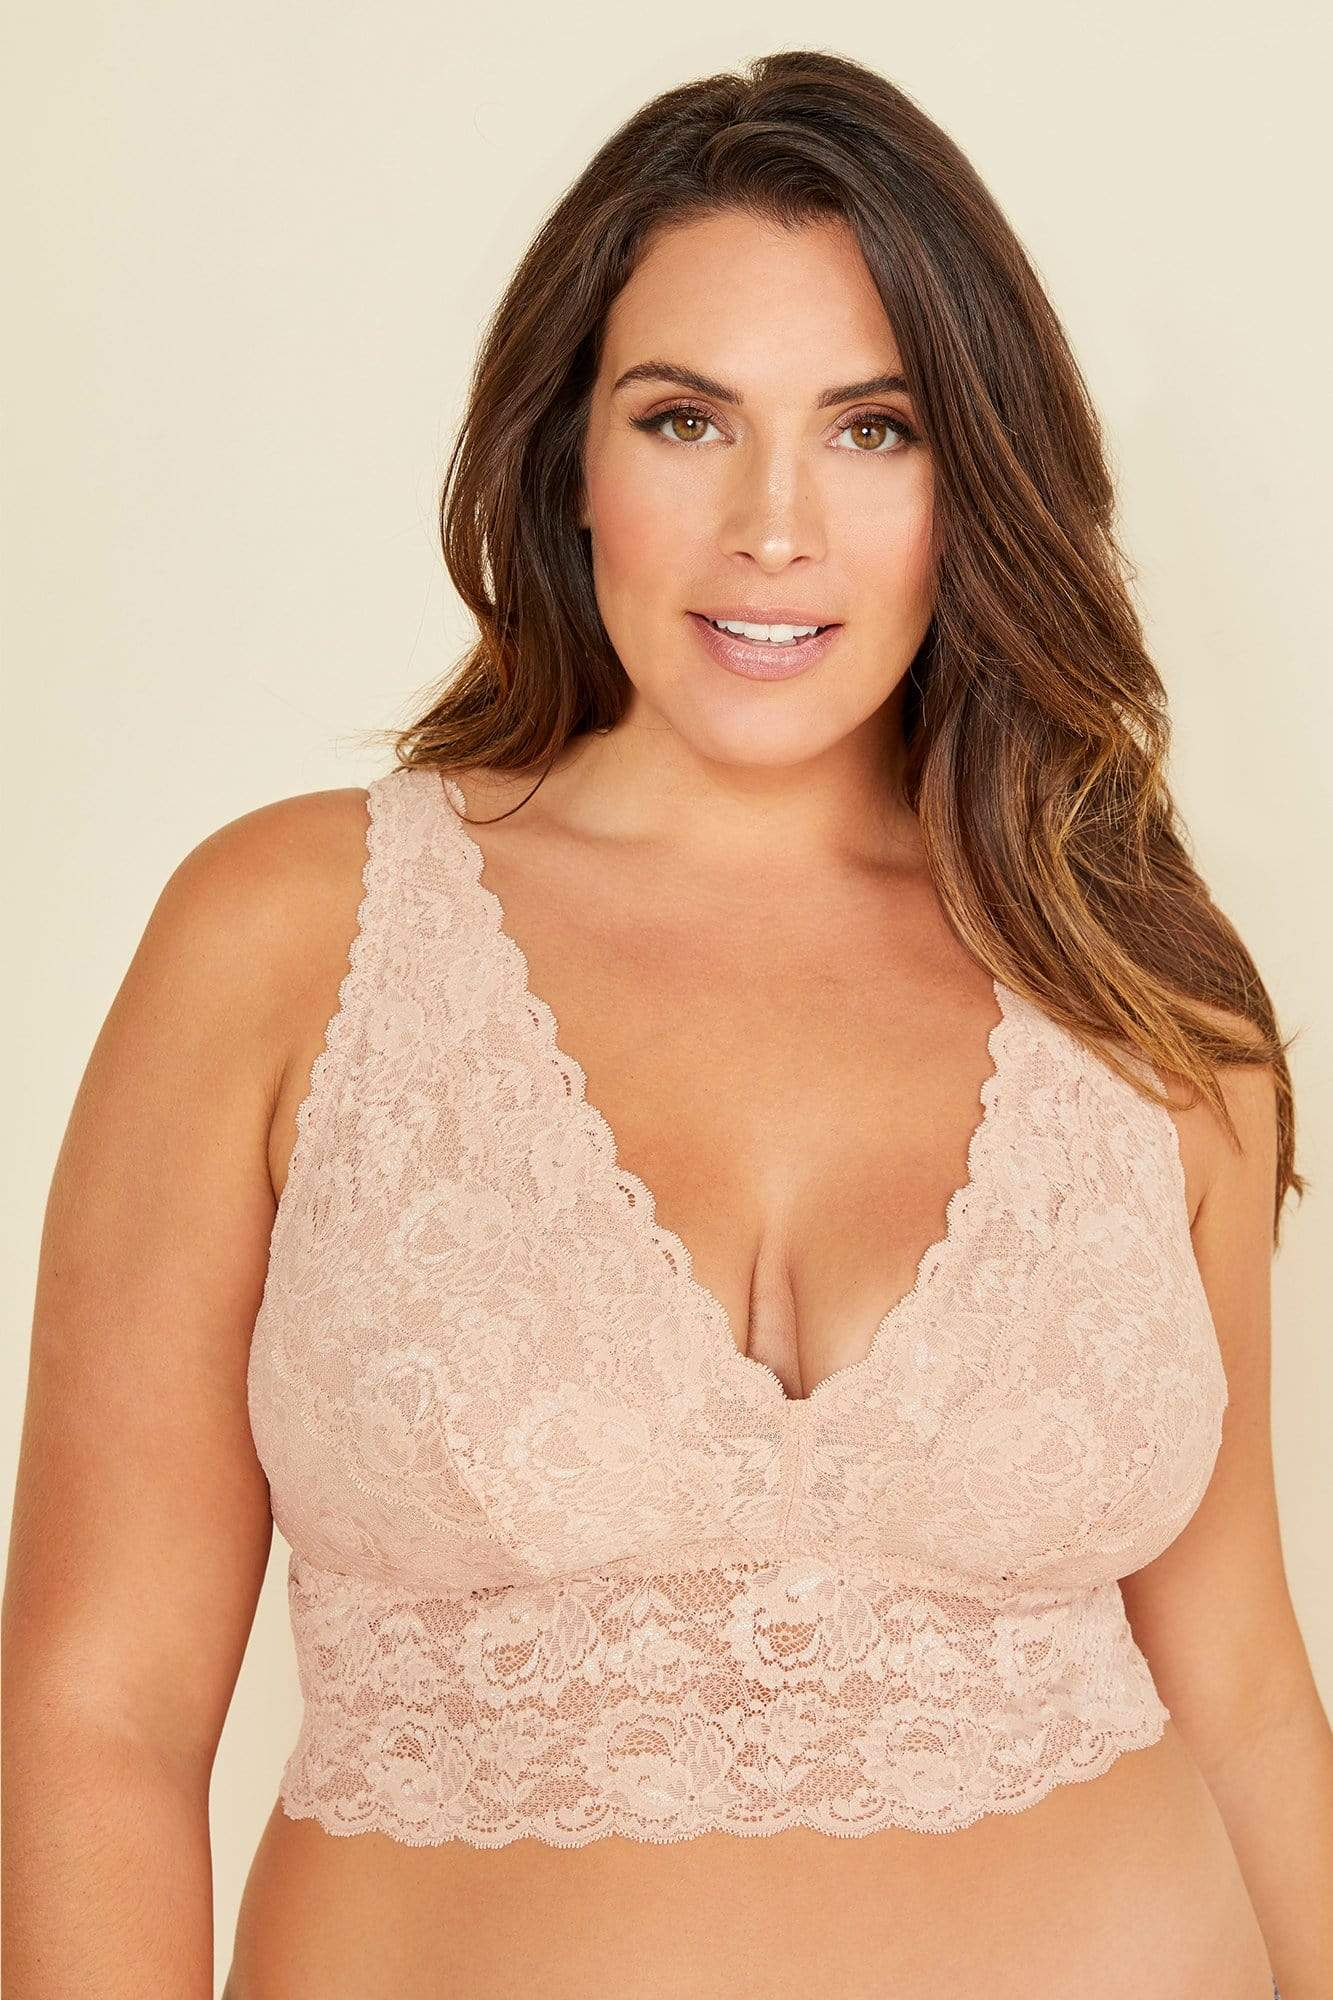 cosabella never say never extended plungie bralette in sette size 1x